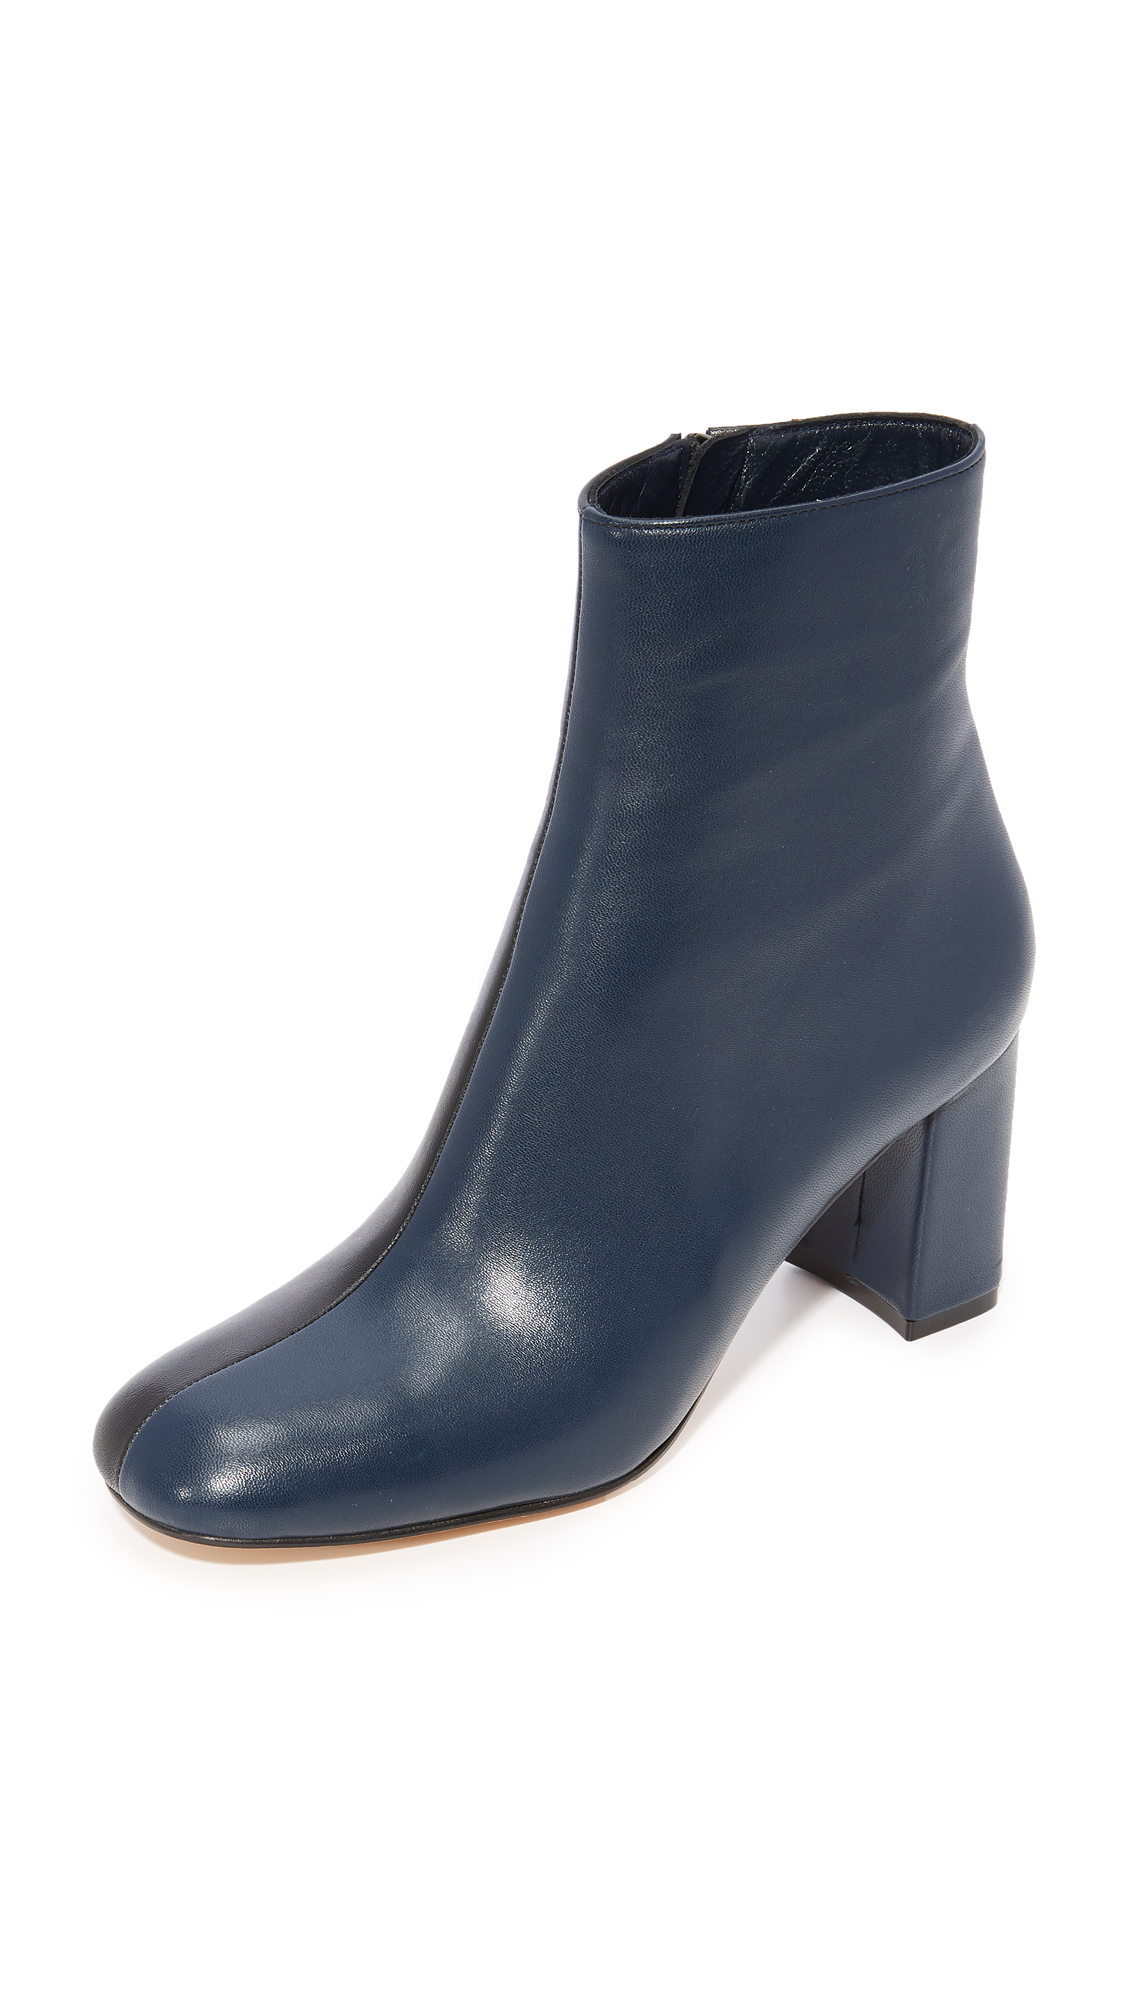 Maryam Nassir Zadeh Agnes Split Booties - Navy/Black